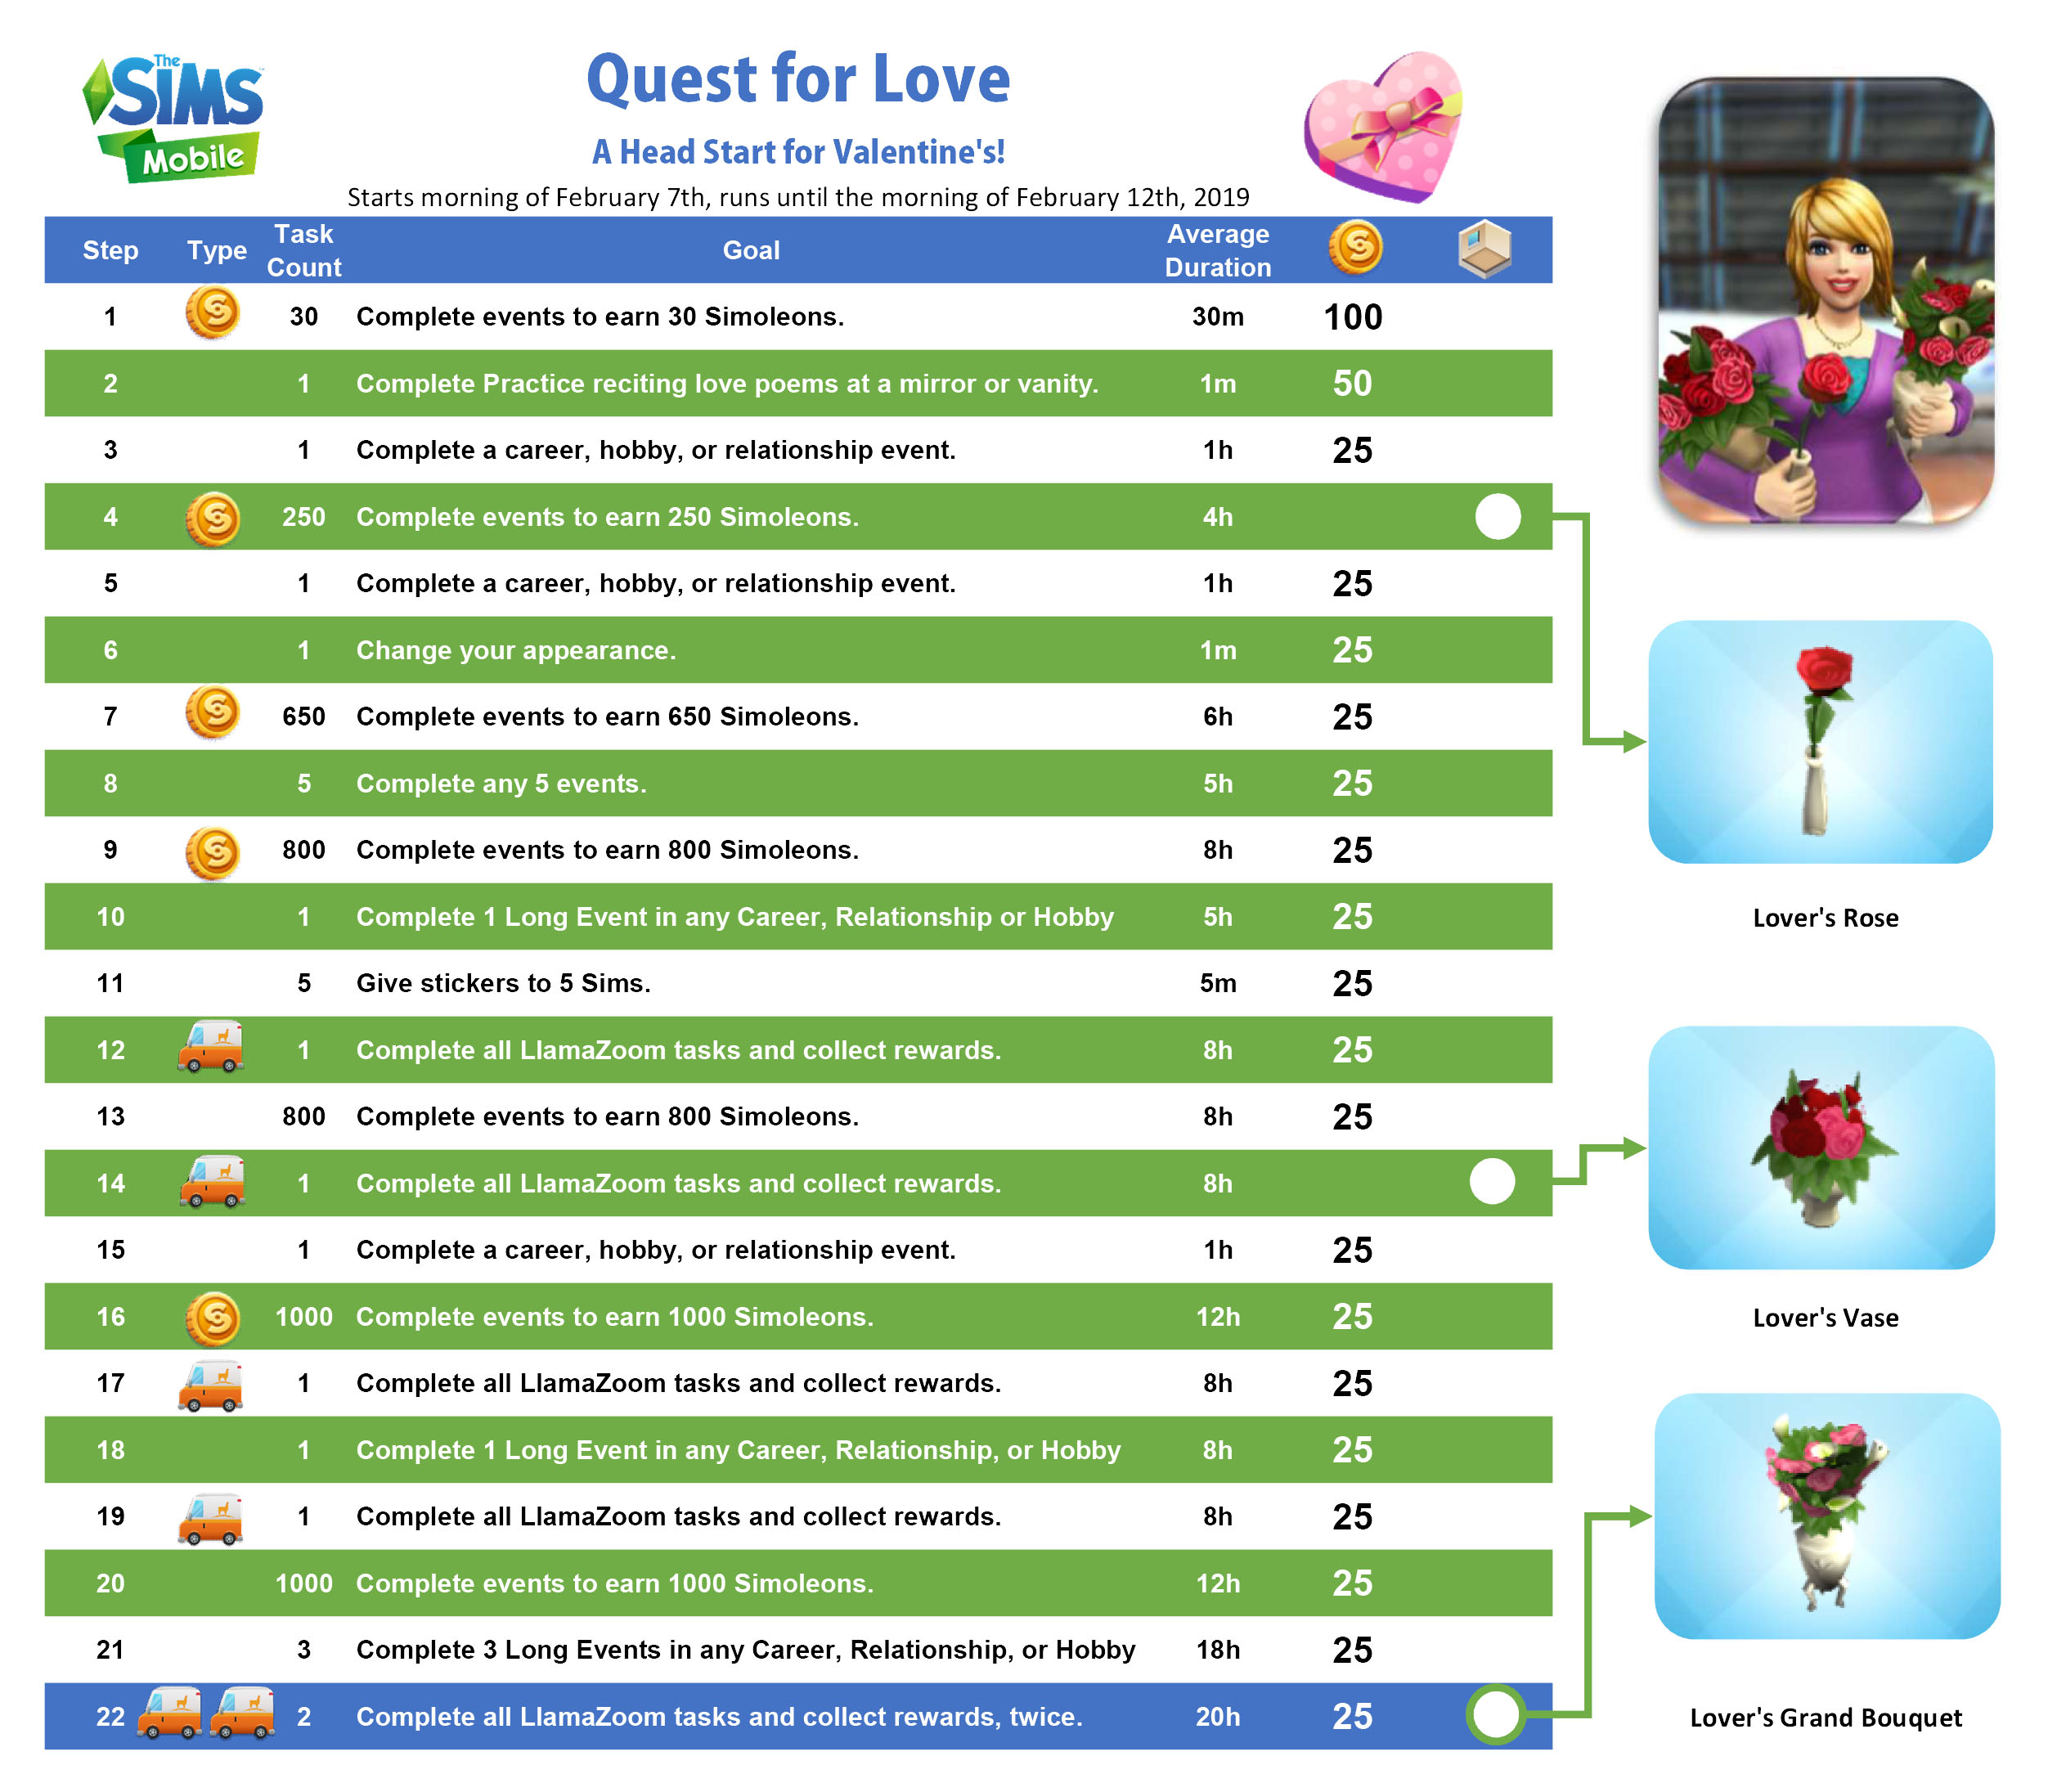 The Sims Mobile Quest for Love Walkthrough!